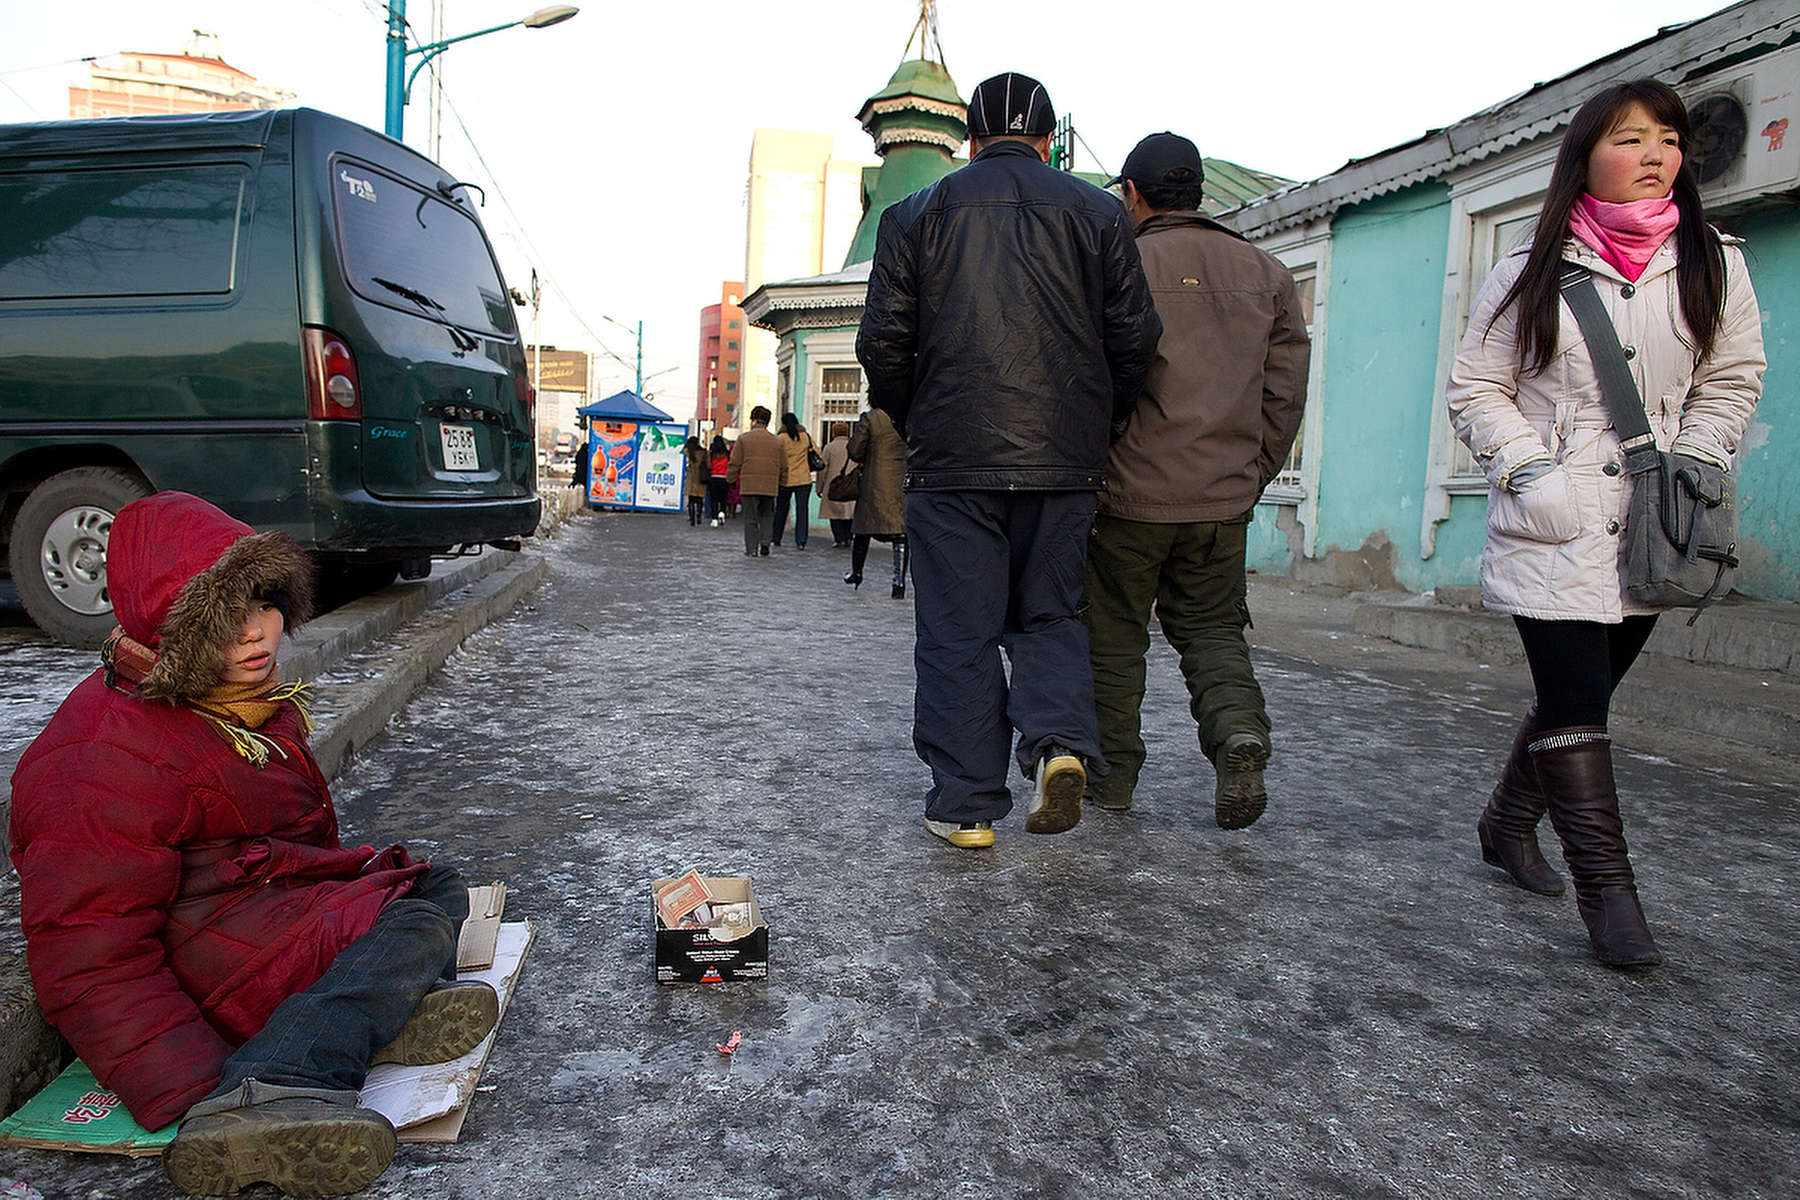 ULAAN BAATAR, MONGOLIA-MARCH 16 :  Otgonjargal, 10, sits on the icy cold street singing to get some quick cash March 16, 2010  in Ulaan Baatar, Mongolia. Otgonjargal spends her time on the streets, not at school. She frequents the Save The Children drop - in center on weekdays and many times runs away with her 2 sisters to stay with other street children. Mongolia suffers with a very high number of alcoholics, all consuming cheap Mongolian vodka that is readily available to the poor and the unemployed, Many Mongolians have immigrated to the capitol city from the far away provinces seeking employment, living in rented traditional circular felt yurts with no running water or electricity. The problem is severe causing the number of street children to rise,  fleeing their abusive, dysfunctional homes. Some children are regularly beaten at home, and for the impoverished it is common to send the child out to make money. During the winter this means extreme hardship, the children out on the city streets are dealing with temperatures dropping as low as -25C mid- Winter. This year Mongolia has experienced the worst winter in 30 years. Presently the government has declared an emergency requiring foreign aid to alleviate the impact of the {quote} Zud{quote} ( Mongolian term for a multiple natural disaster) caused by bitter cold and thick snow that has effected 68% of the provinces. (Photo by Paula Bronstein /Getty Images)